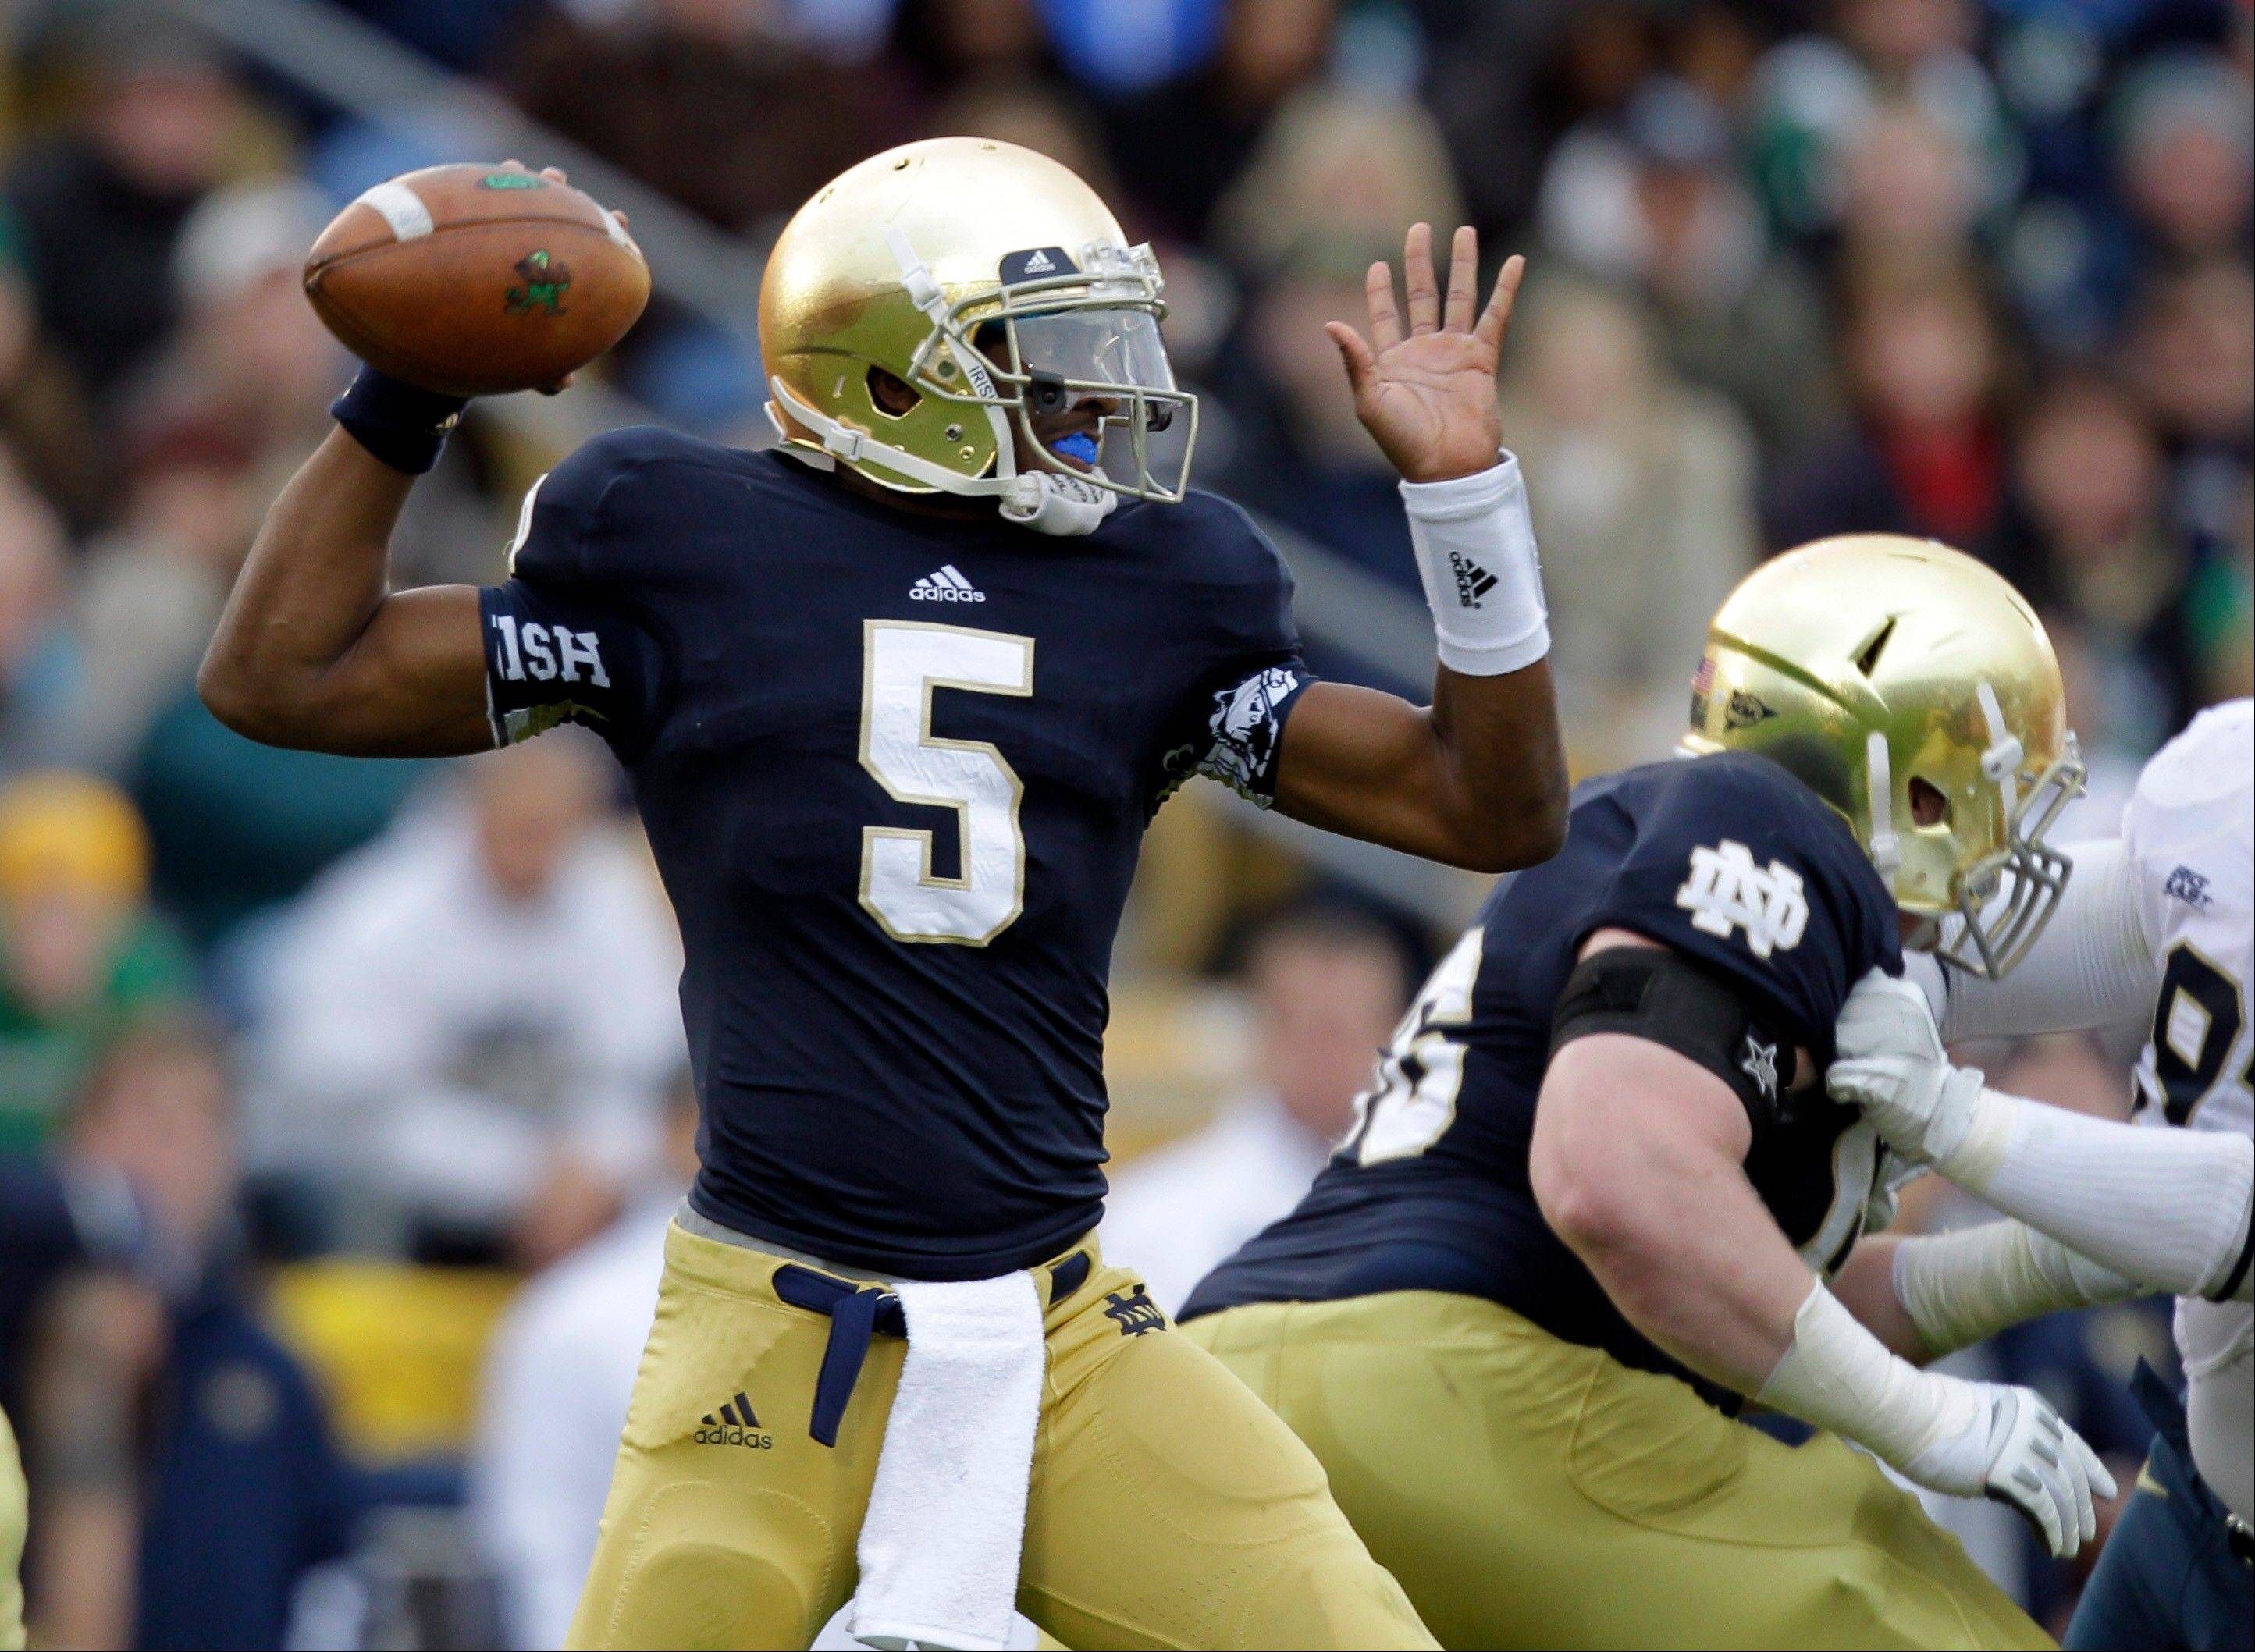 Notre Dame quarterback Everett Golson throws against Pittsburgh Saturday during the first half in South Bend, Ind.